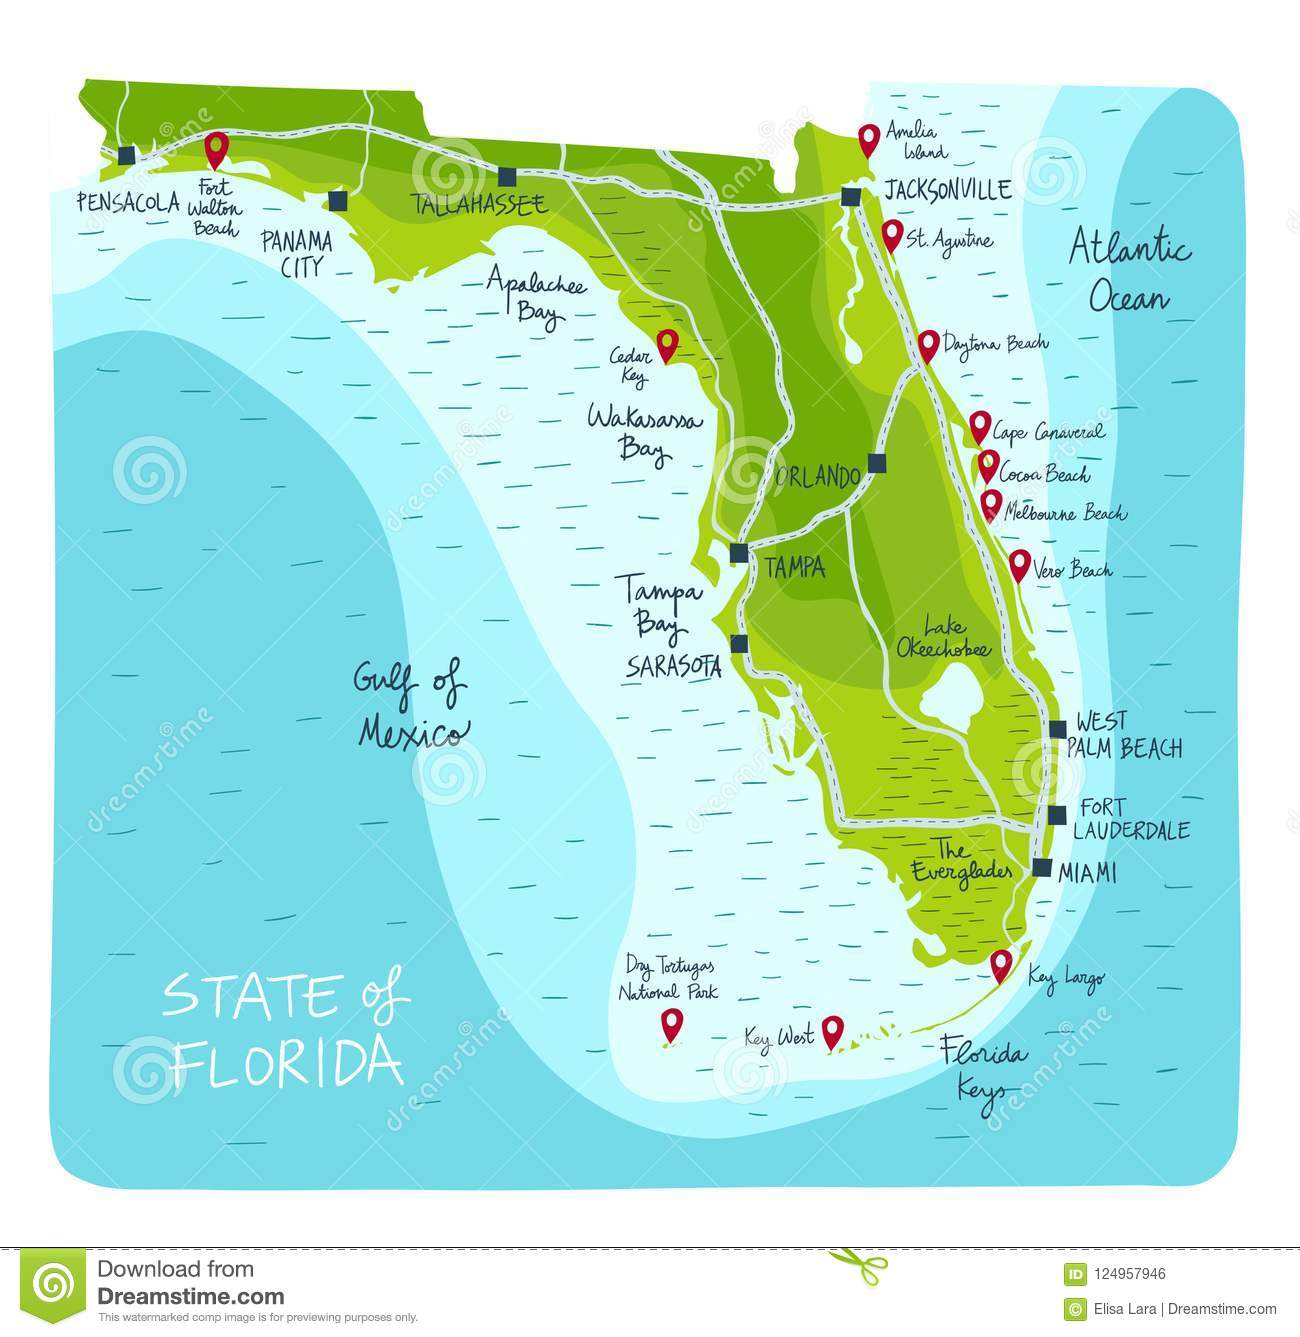 Map State Of Florida.Imprimirhand Drawn Map Of The State Of Florida With Main Cities And